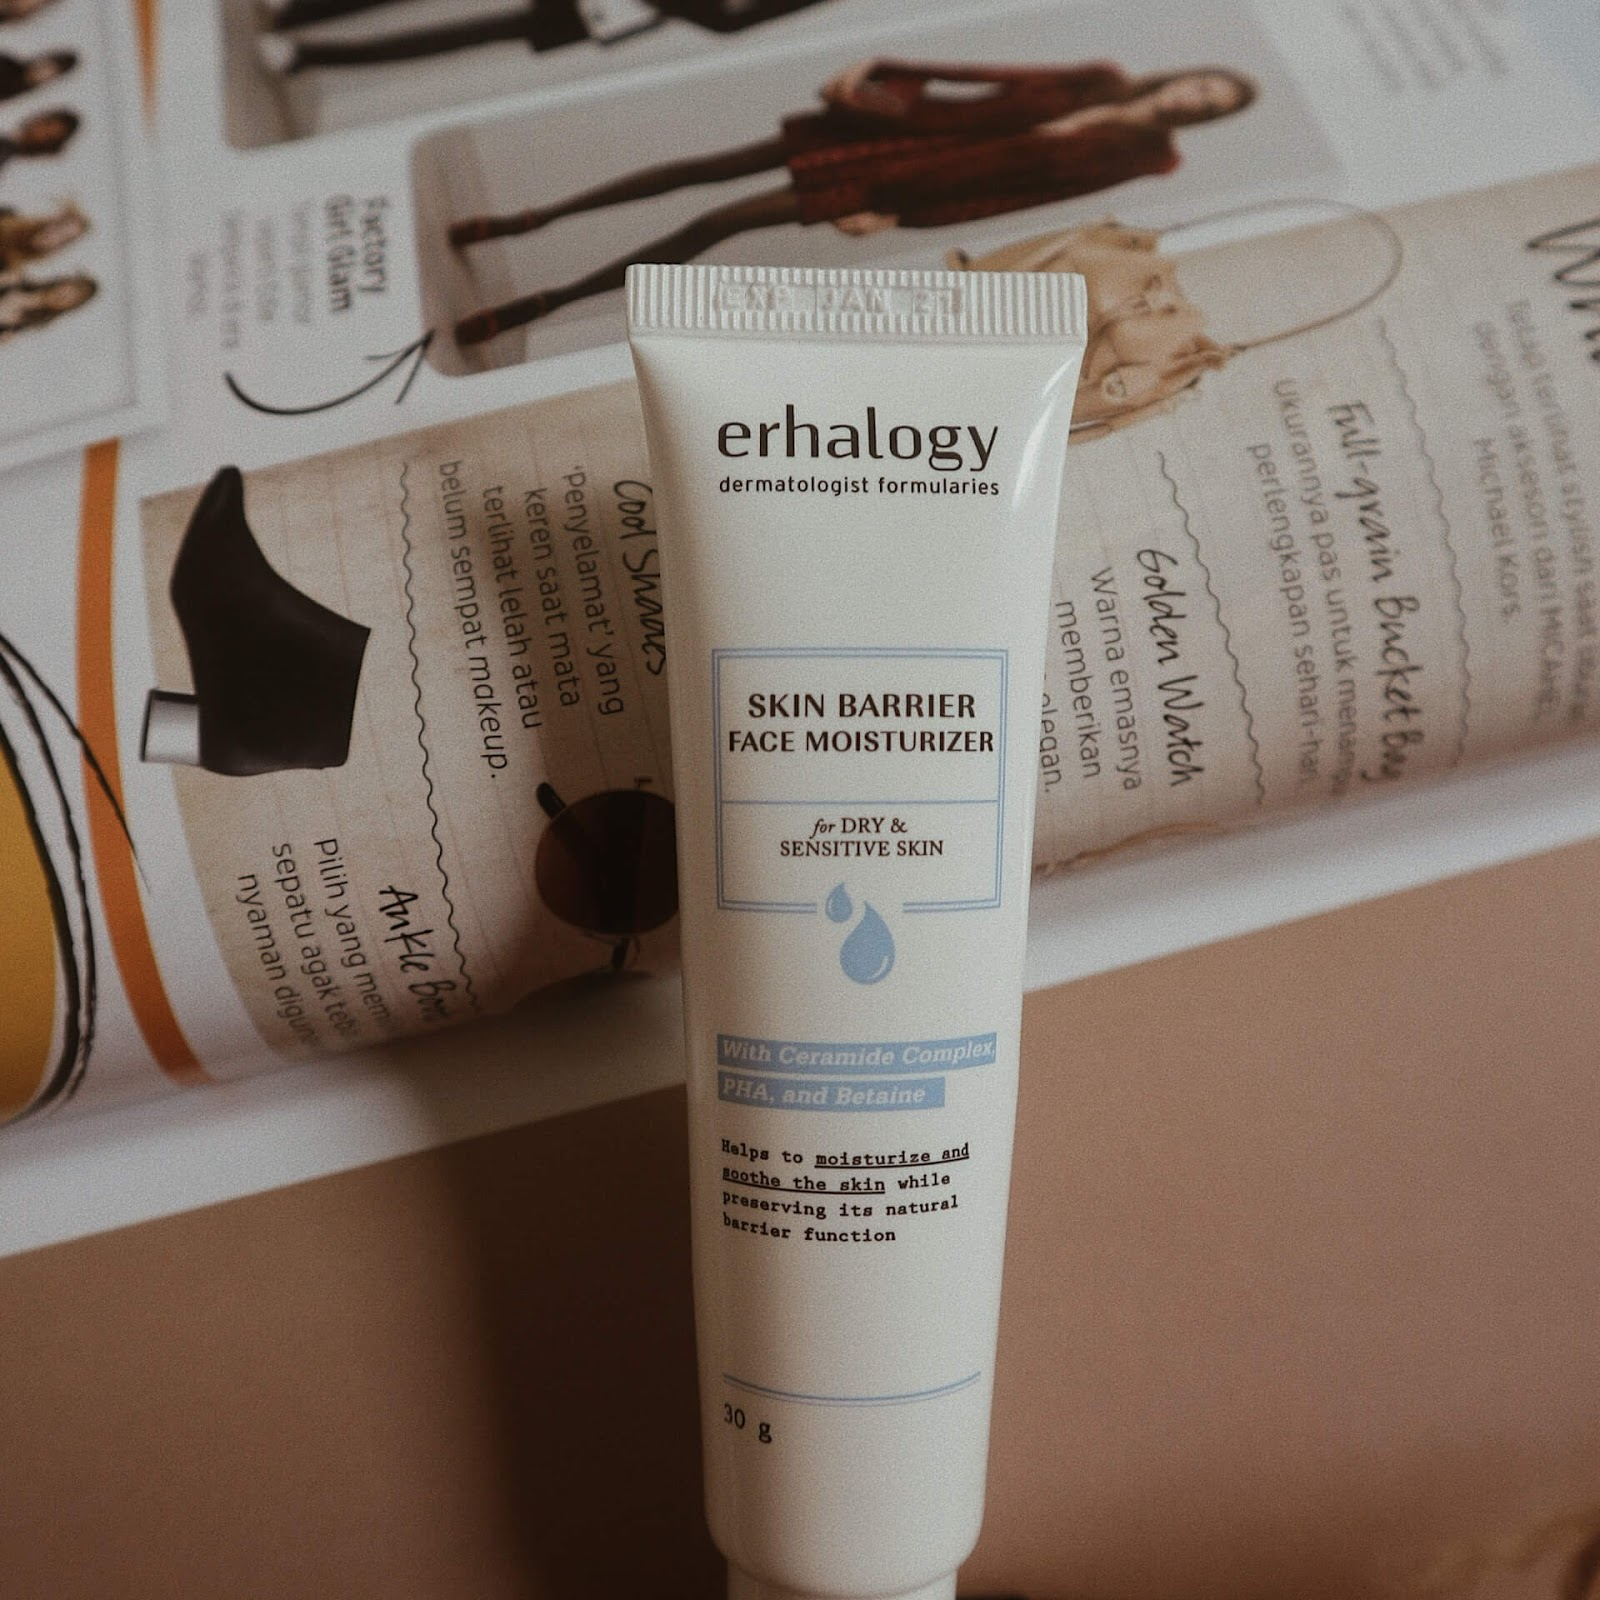 Erhalogy Skin Barrier Face Moisturizer